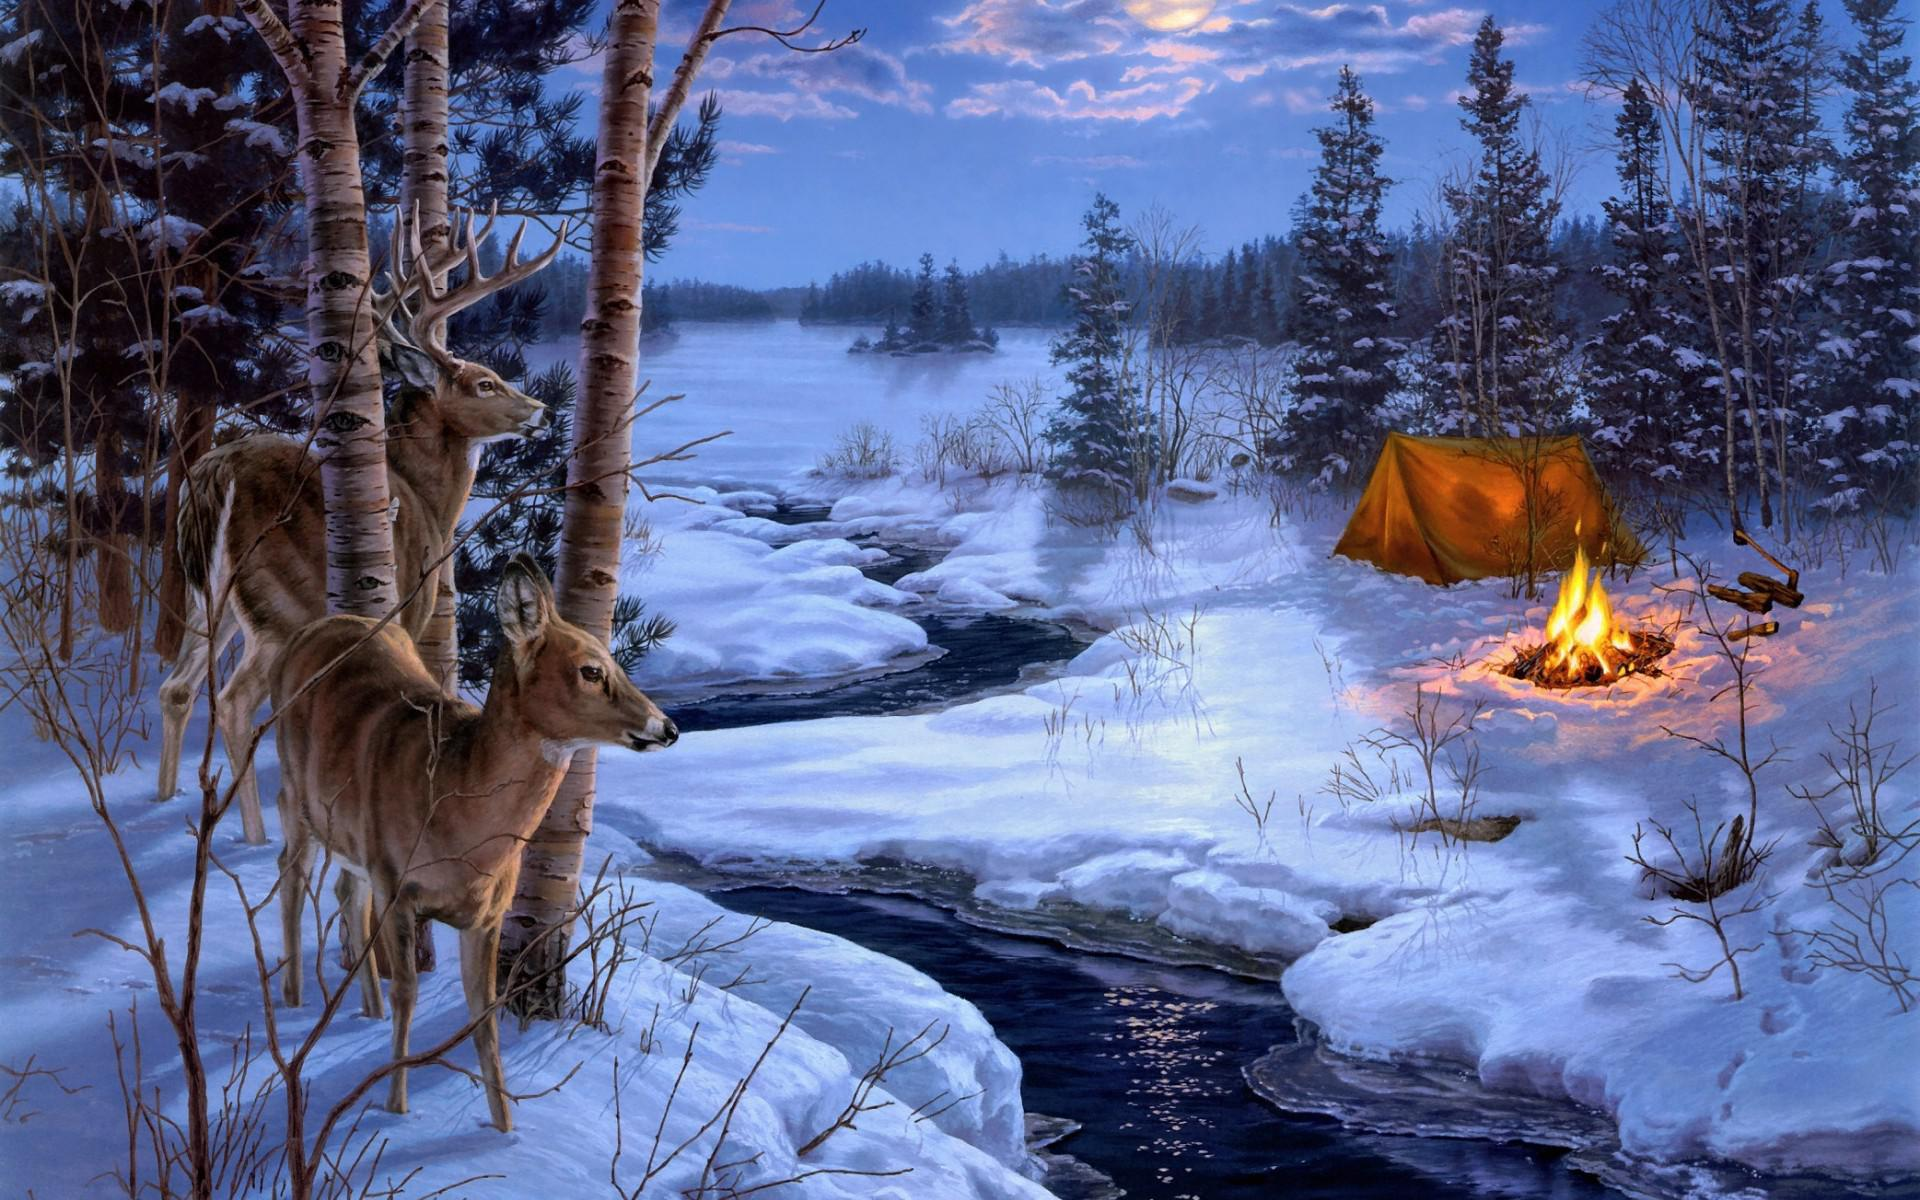 darrell-bush-moon-shadows-painting-winter-snow-animals-deer-for-desktop